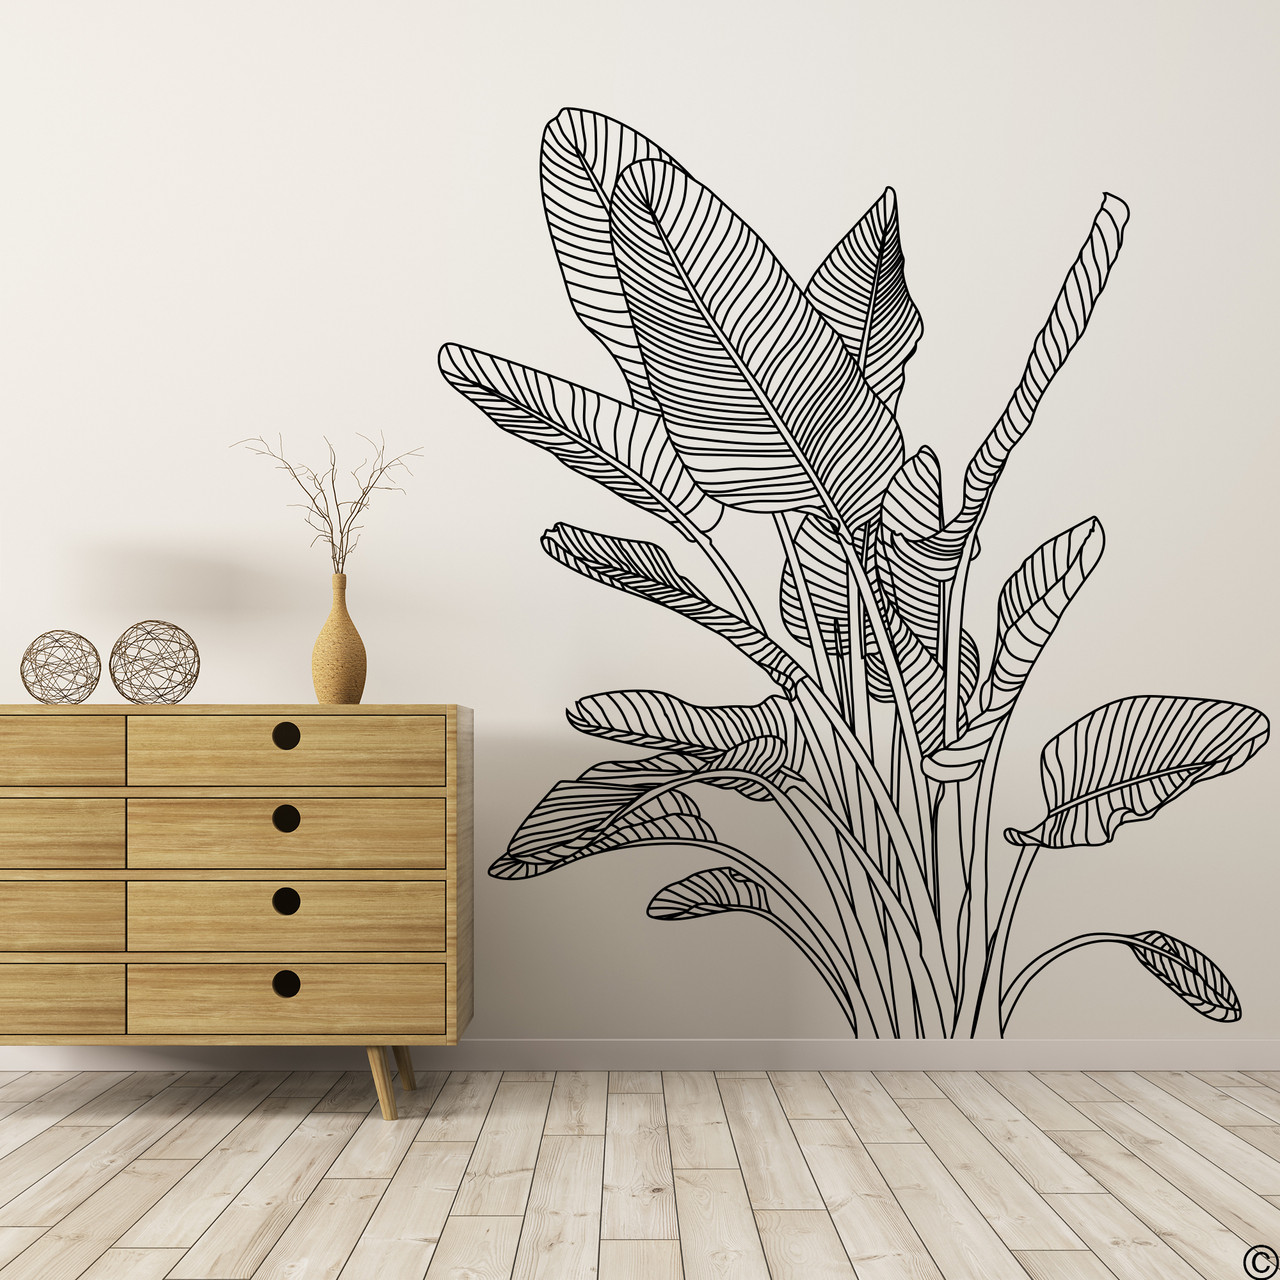 The Bird of Paradise wall decal art shown here in black vinyl color.